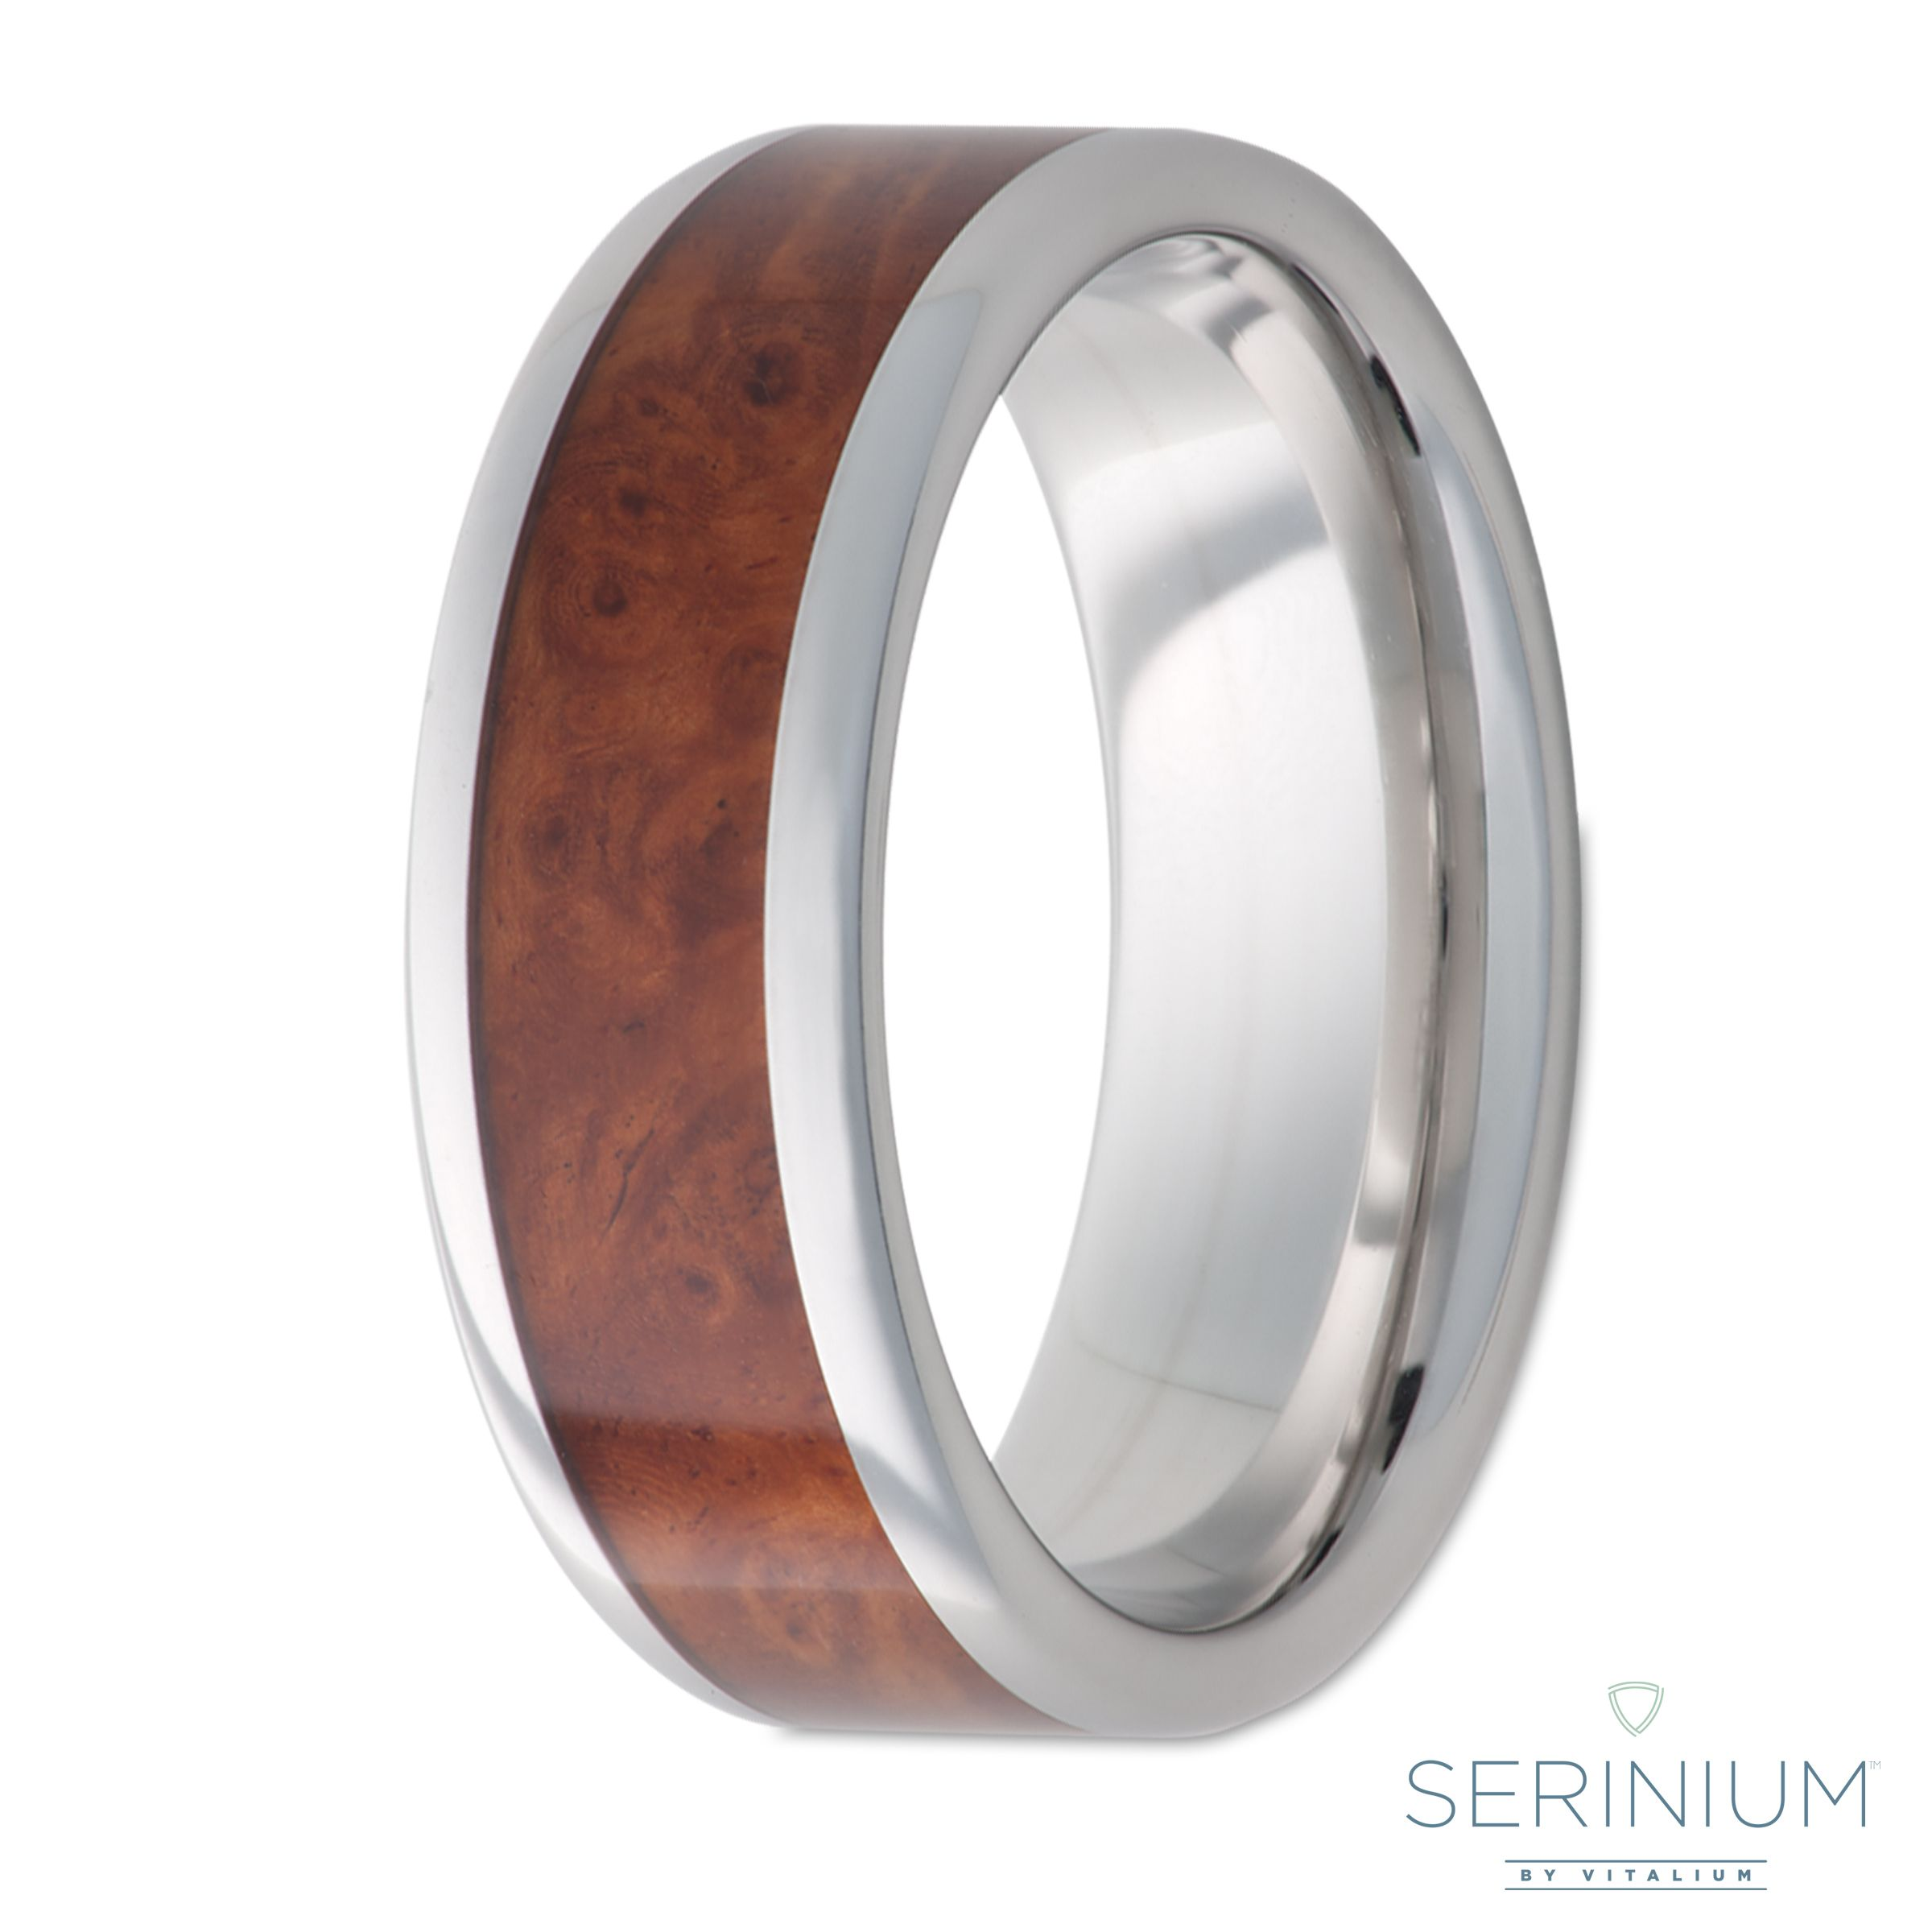 serinium mens wedding ring the precious contemporary metal - Hypoallergenic Wedding Rings